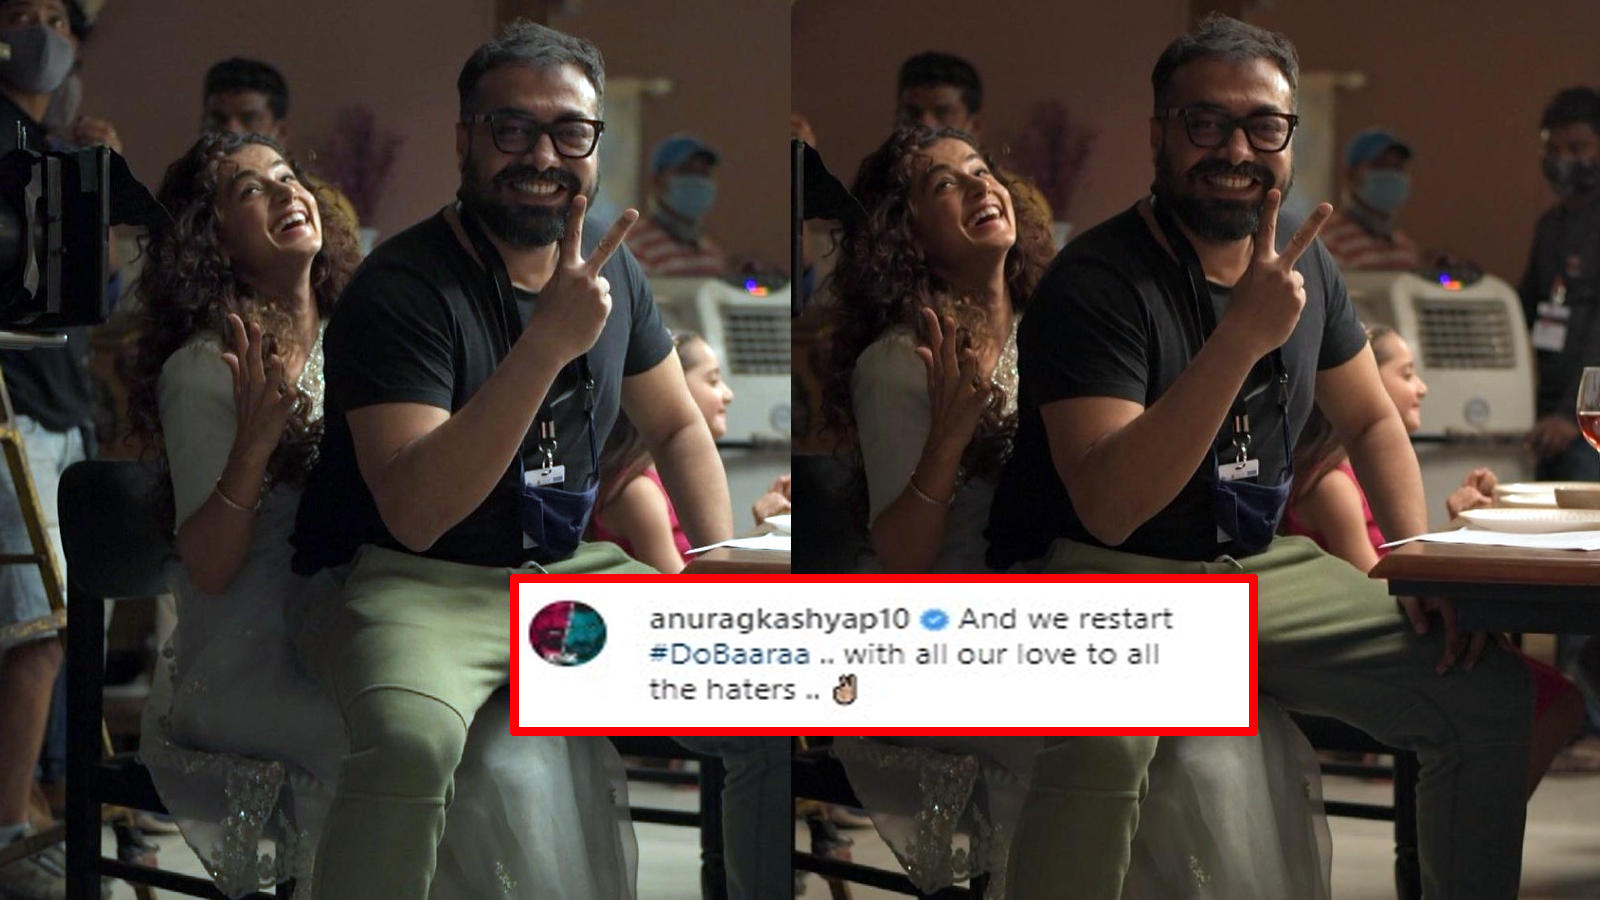 with-all-our-love-to-all-the-haters-writes-anurag-kashyap-as-he-shares-a-picture-with-taapsee-pannu-from-sets-of-dobaaraa-after-i-t-raids